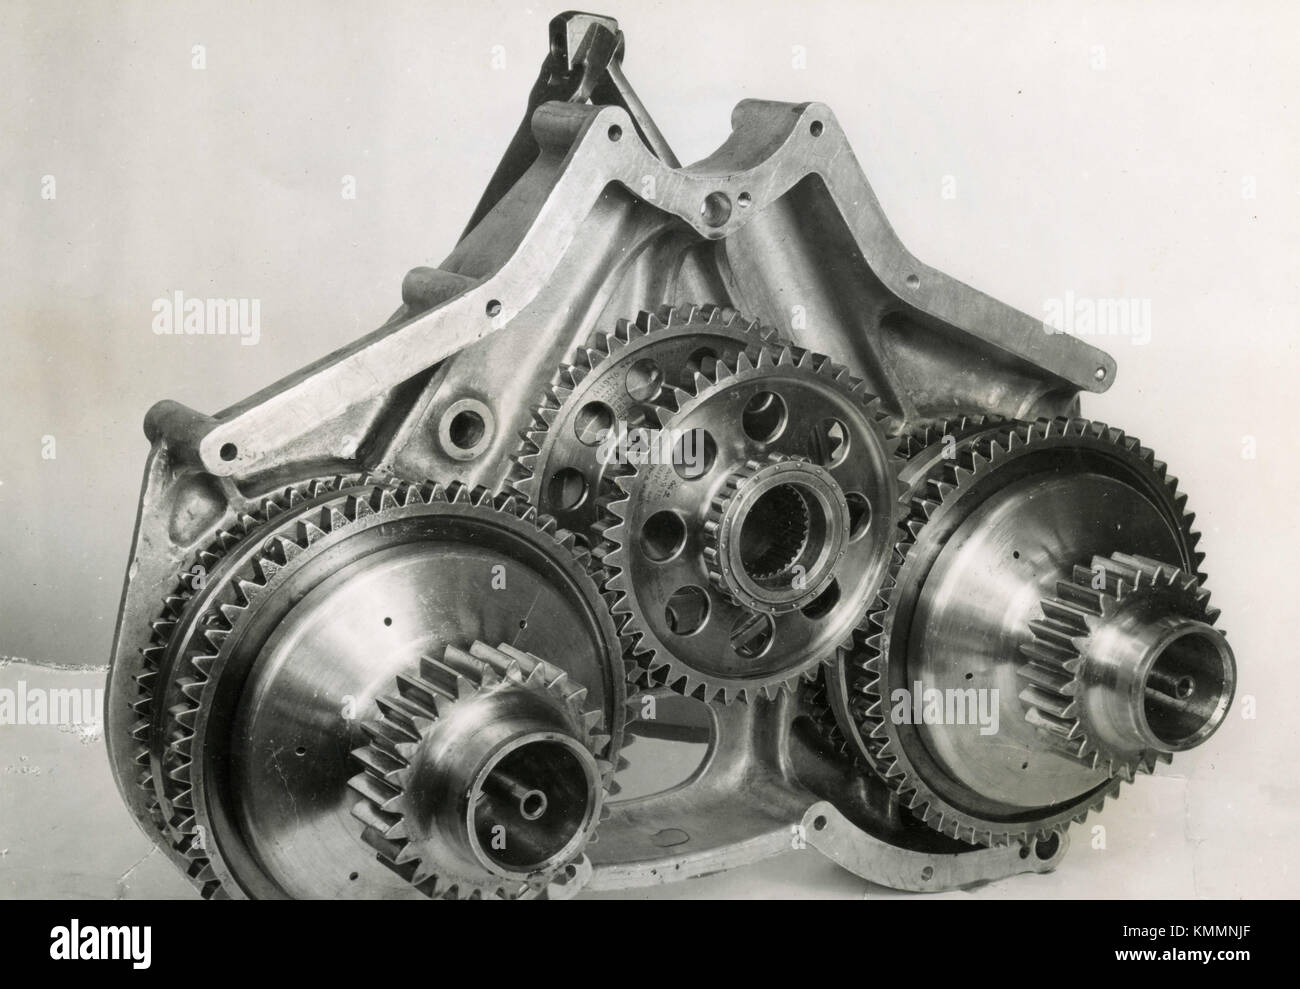 The two layshaft, double clutch, supercharger drive of Rolls-Royce Eagle engine, UK 1947 - Stock Image